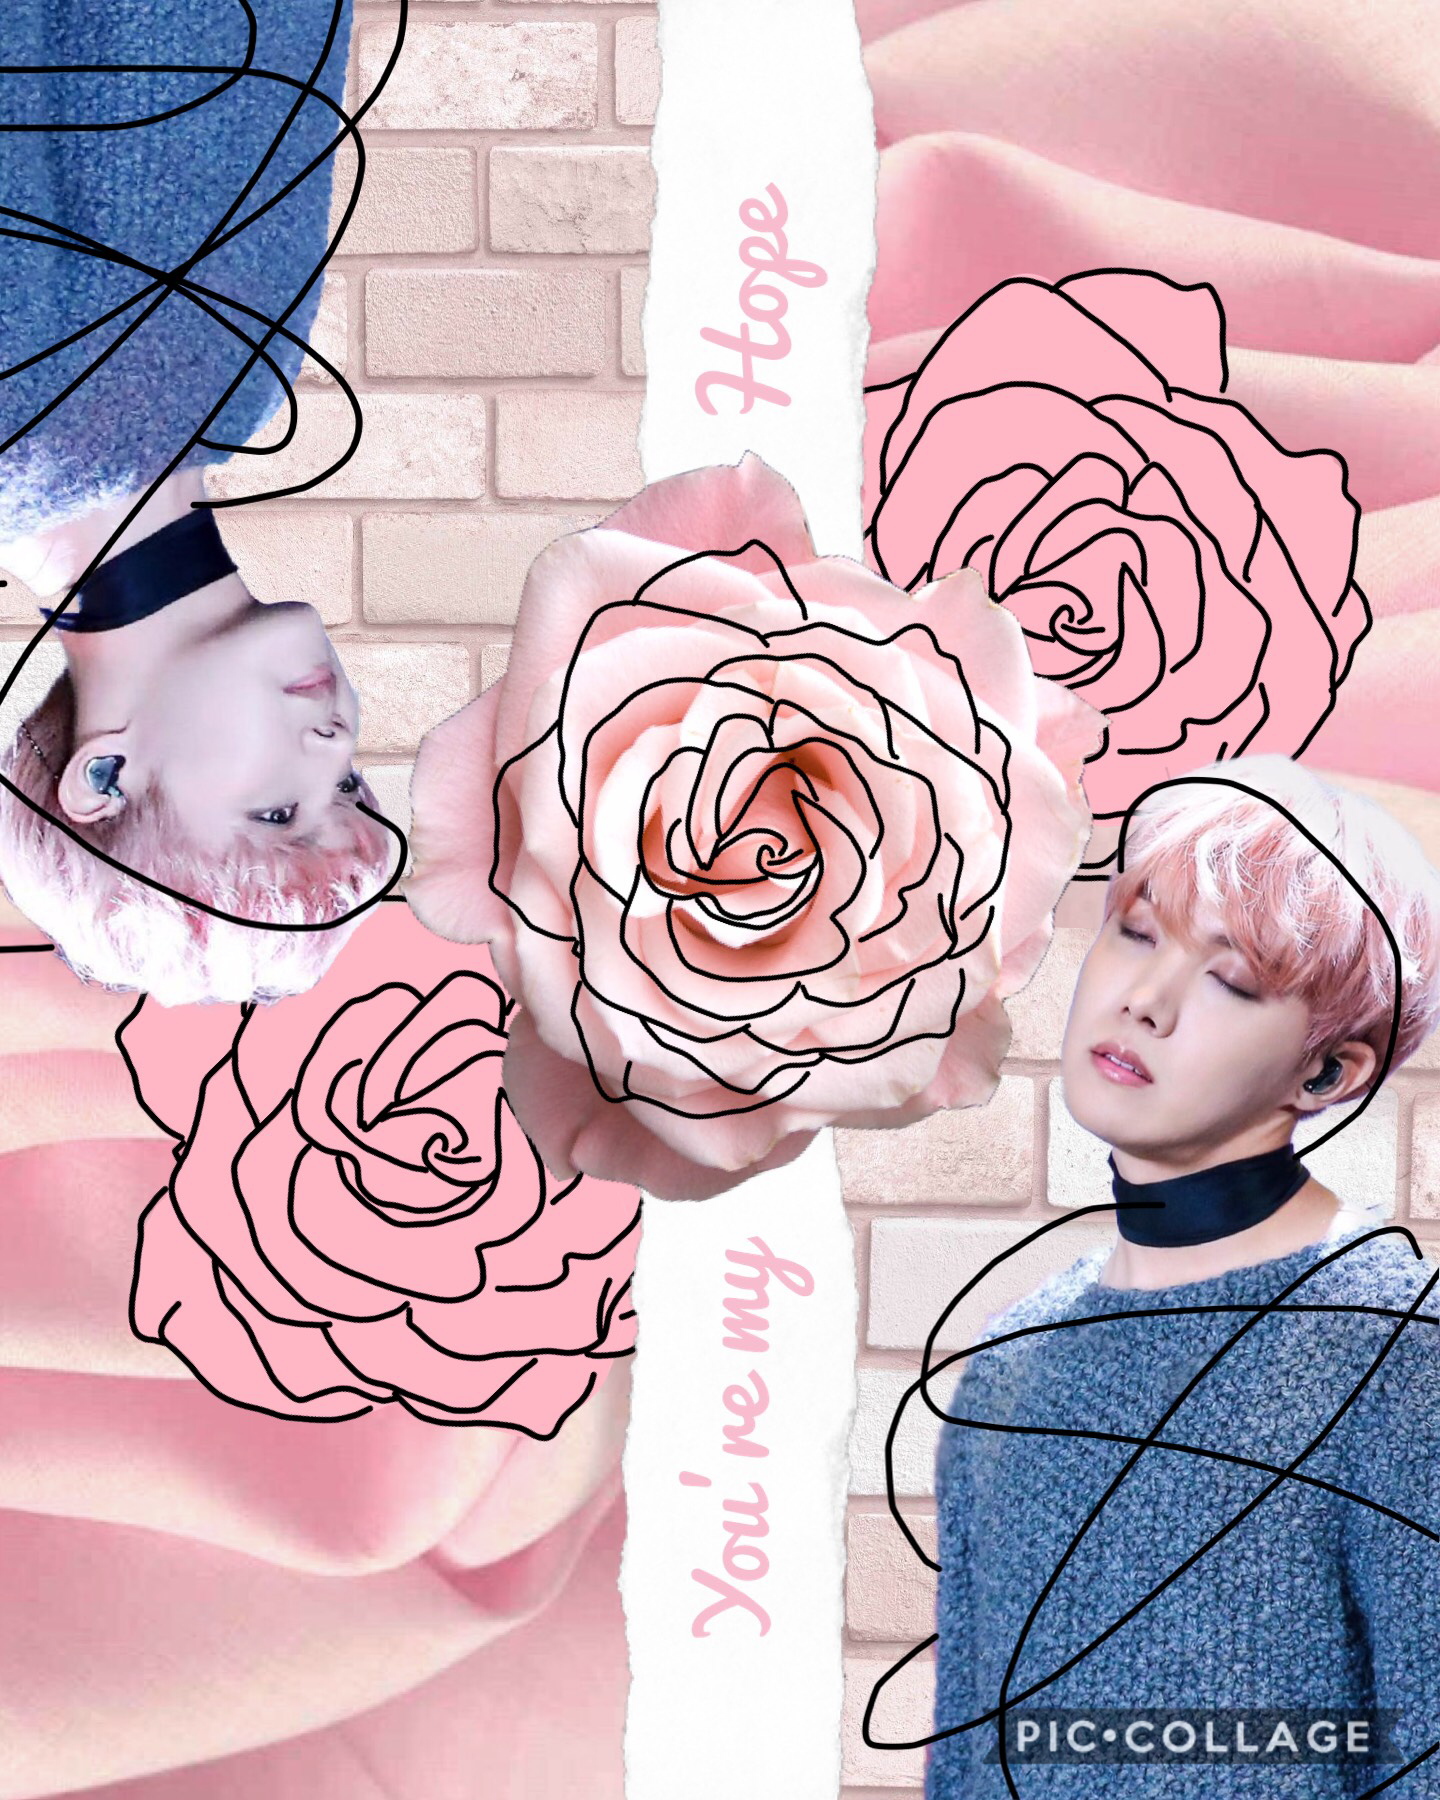 Made this for @NamjoonsBiasRavenclaw's kpop games 💖